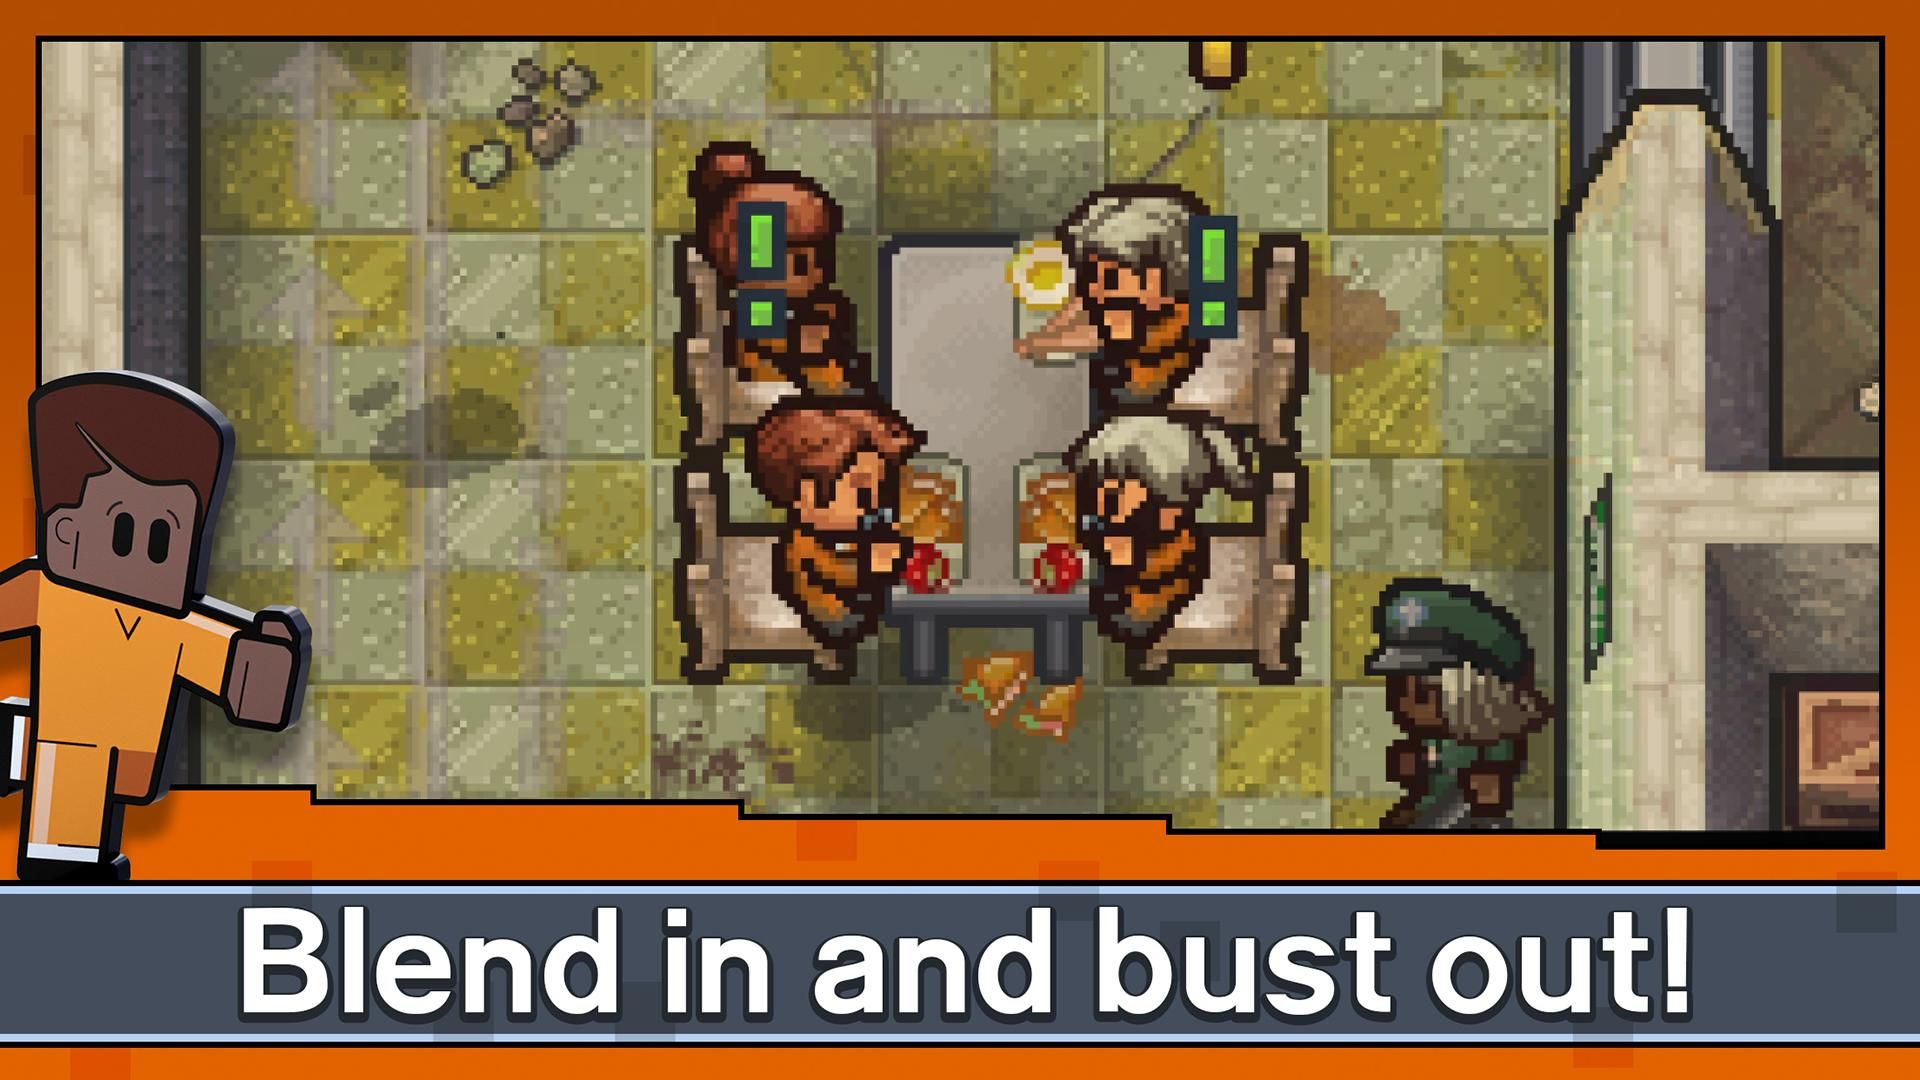 逃脱者2(The Escapists 2) 游戏截图4